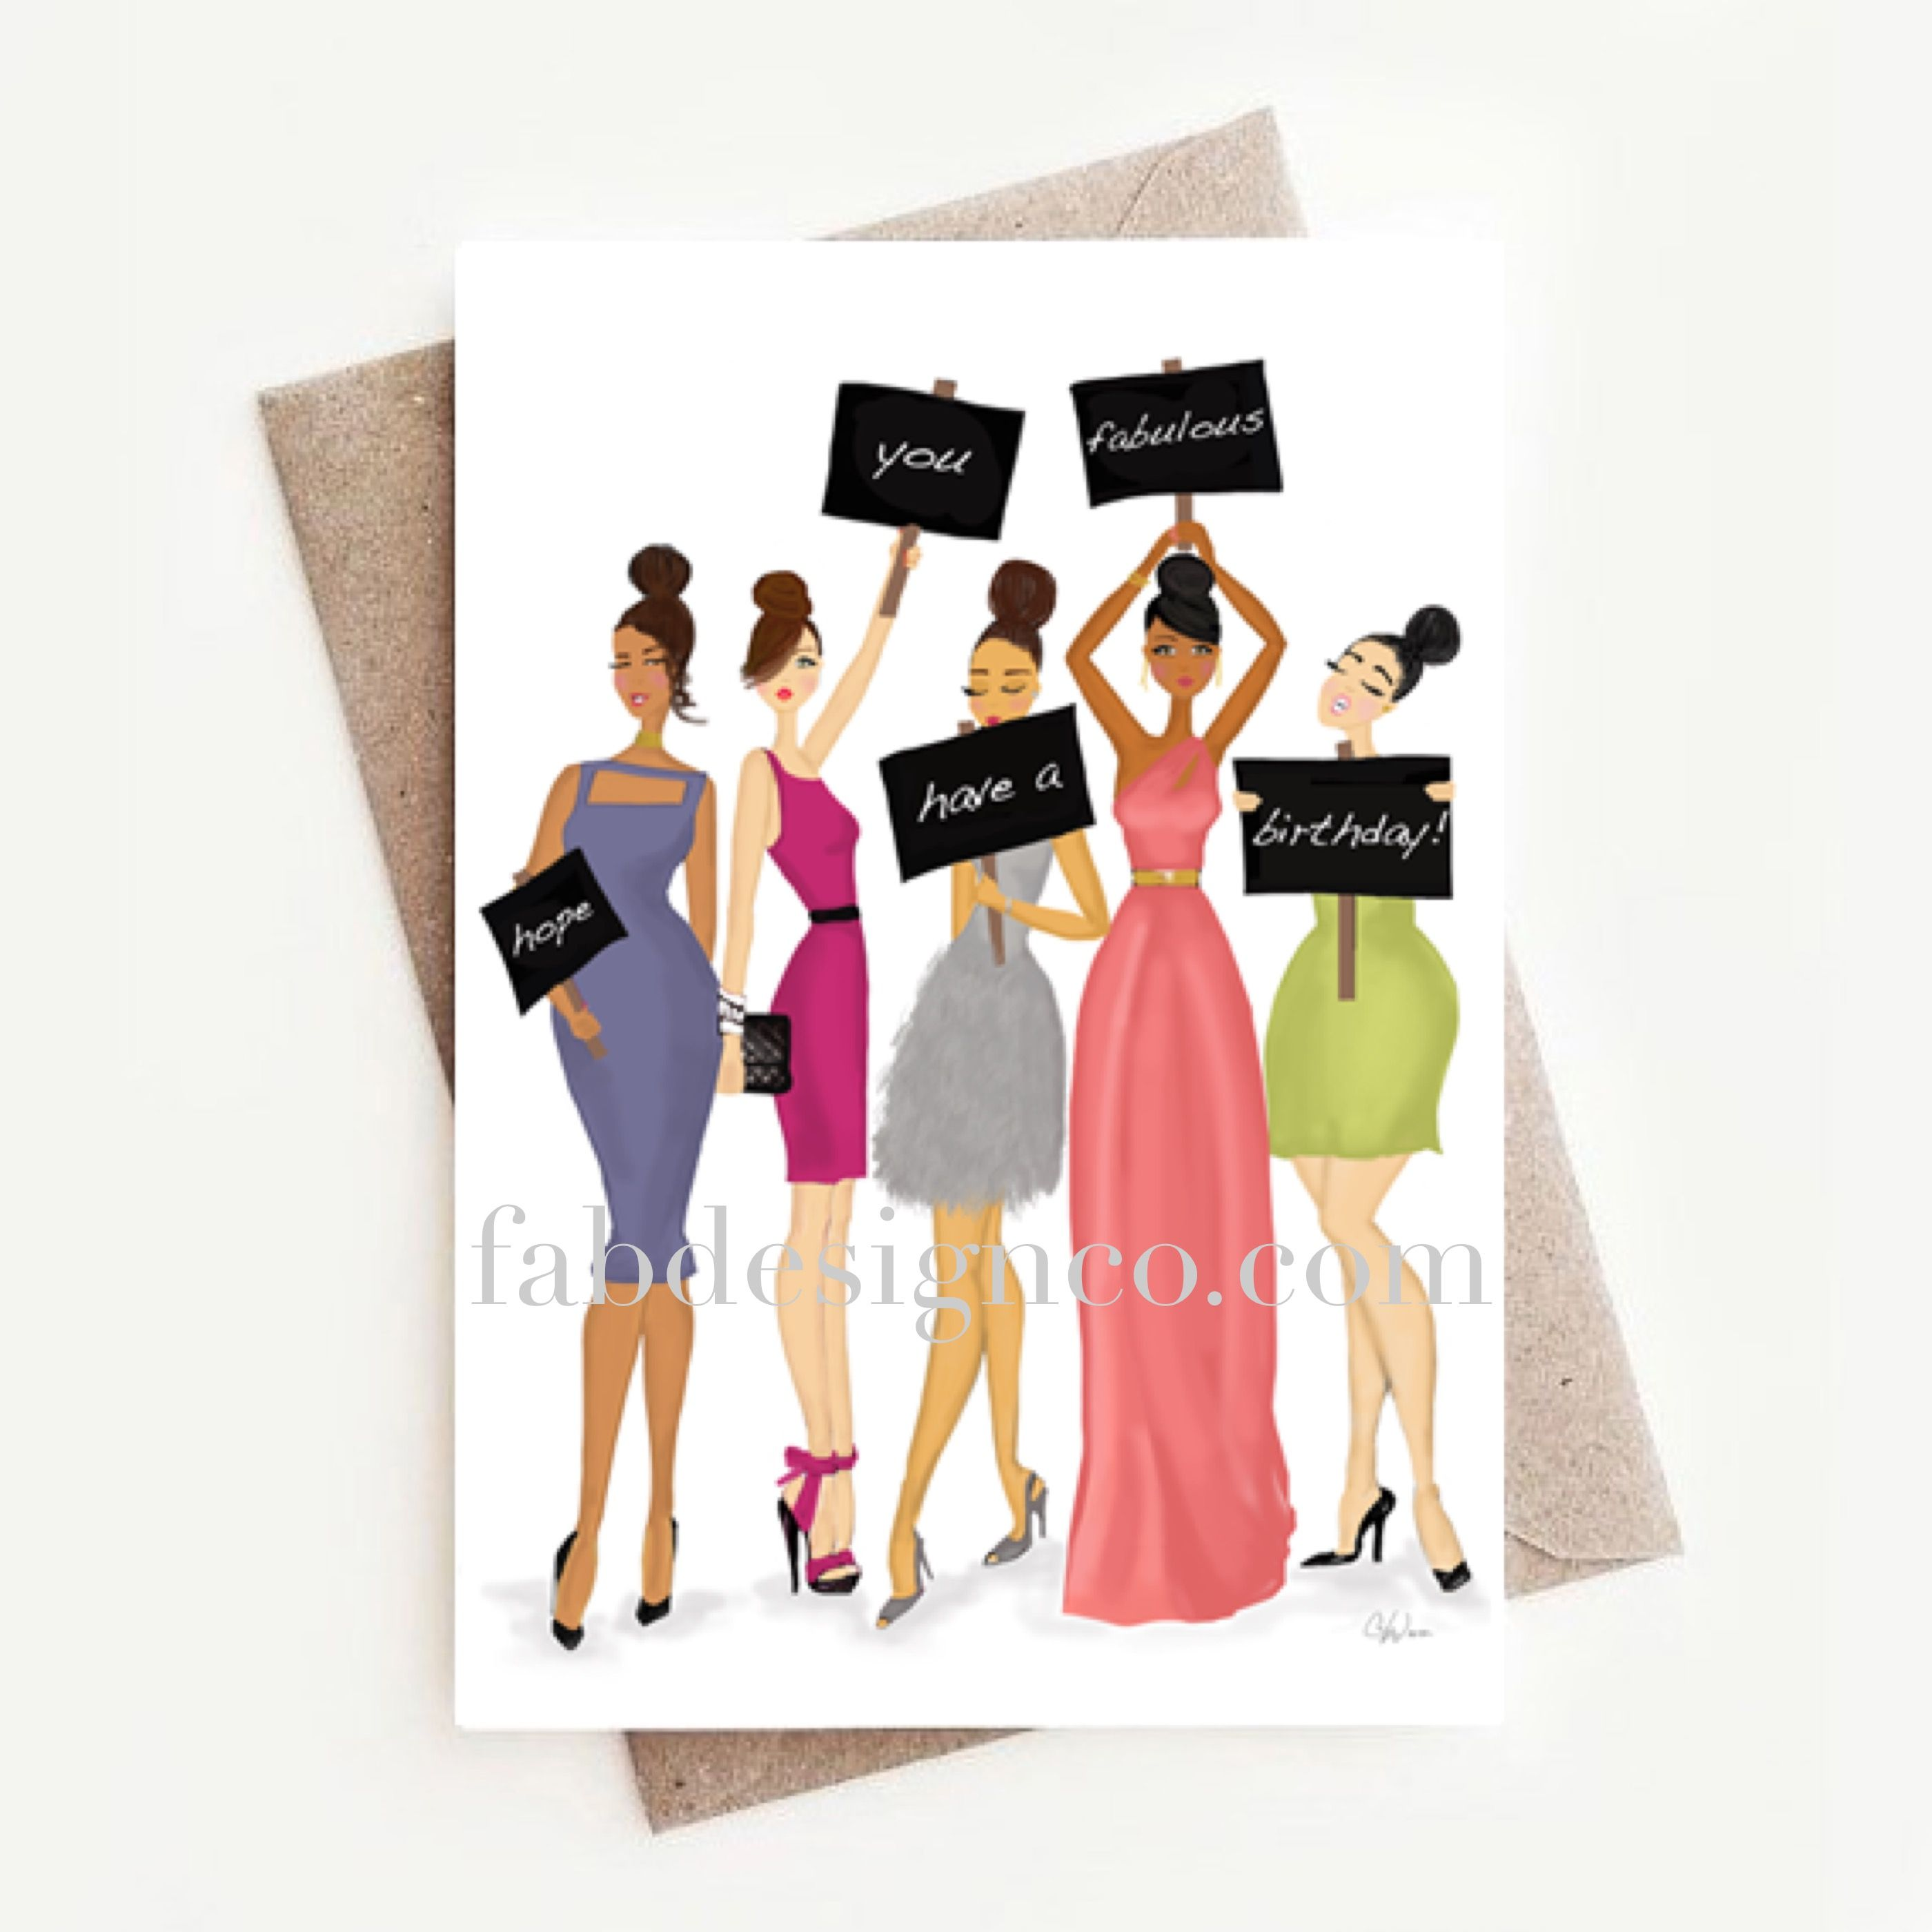 Birthday greeting card fashionista african american shop fab a funny multicultural black or african american fashion birthday greeting card assortment from fab design company featuring fashionistas and fun messages kristyandbryce Choice Image